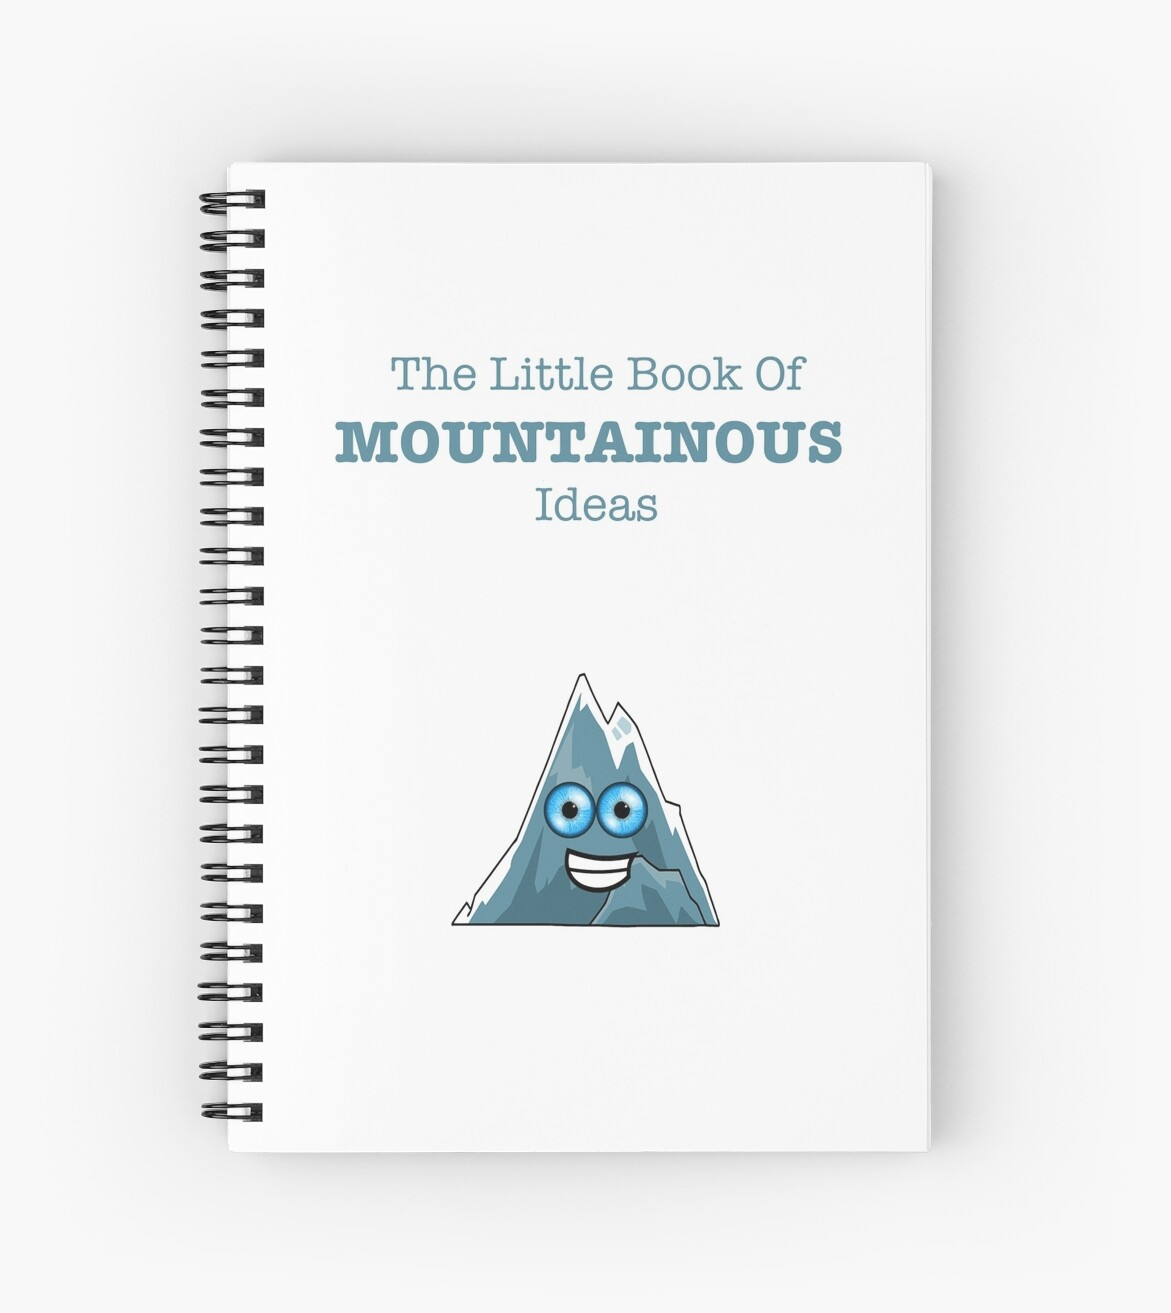 Little Book of Mountainous Ideas - Inspirational Quote Spiral Book by neviz